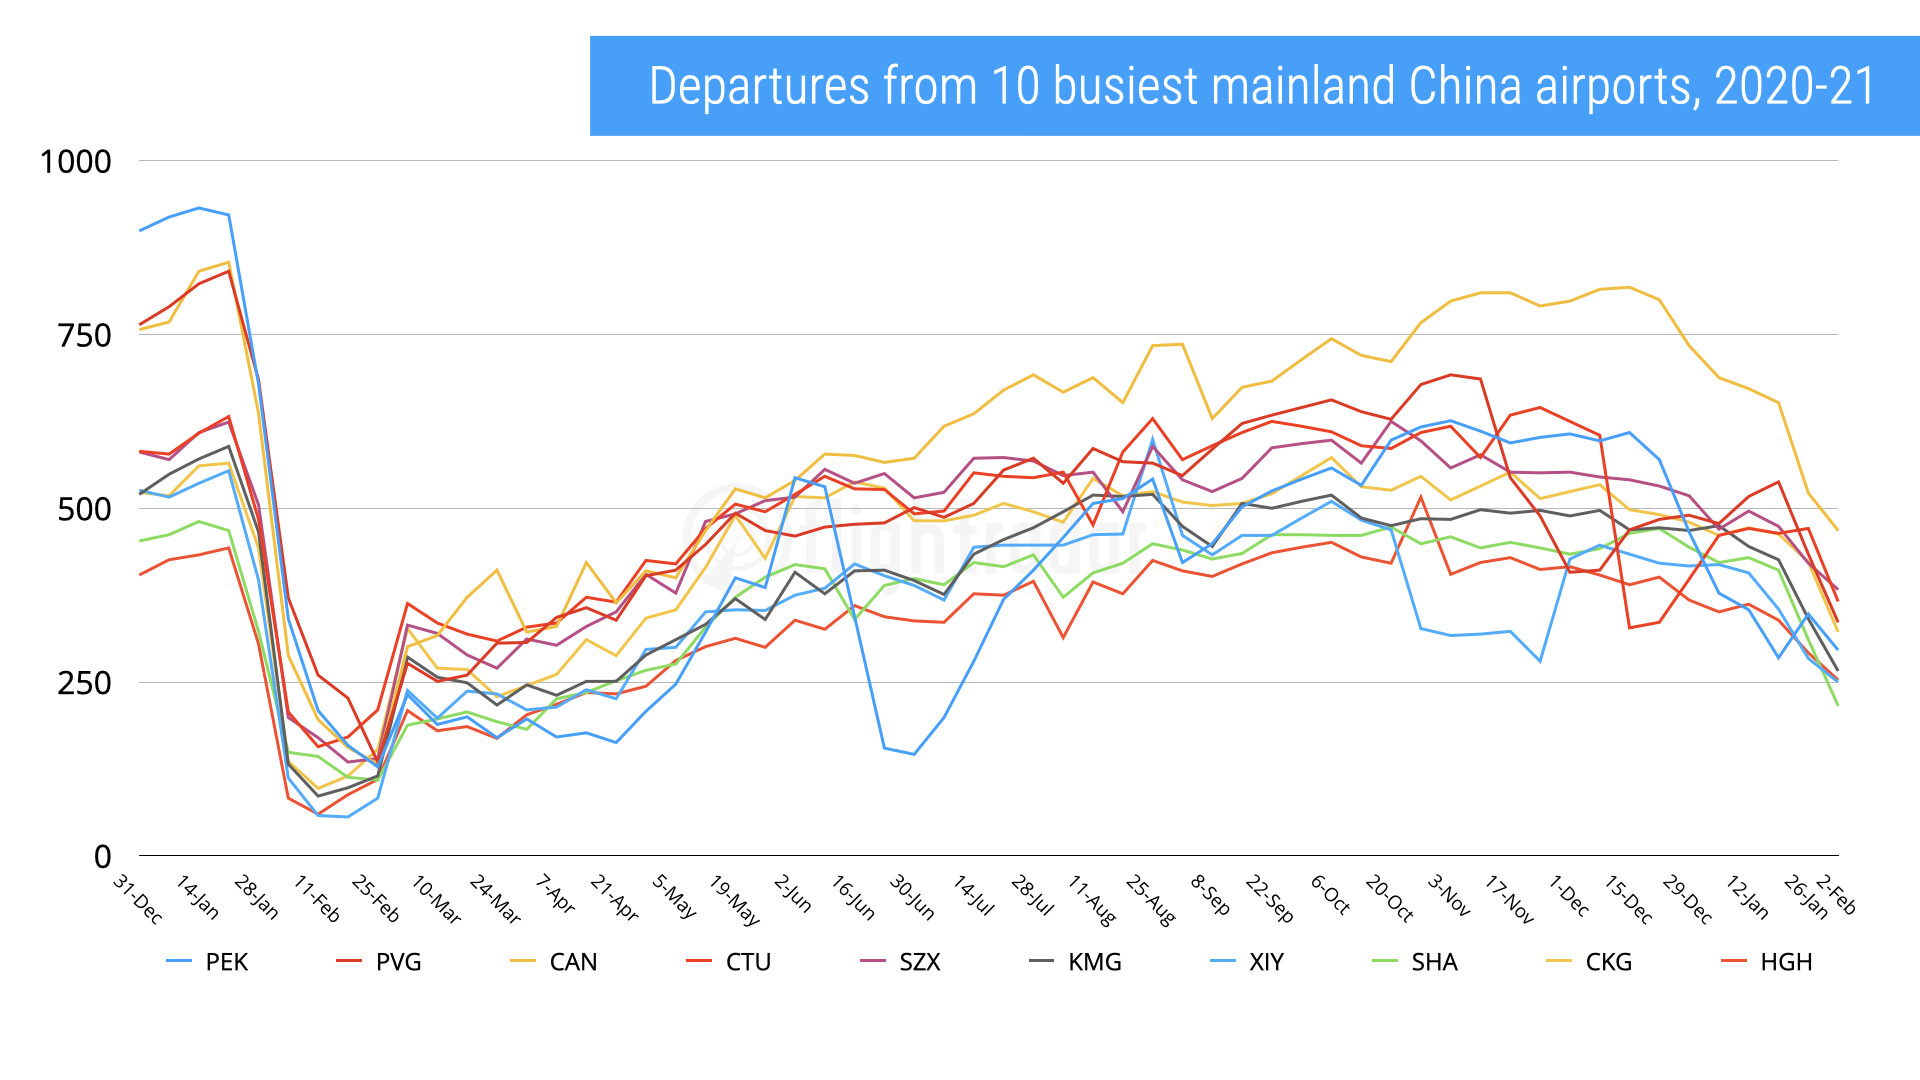 Chart of departures from mainland China's 10 busiest airports, 2020-2021